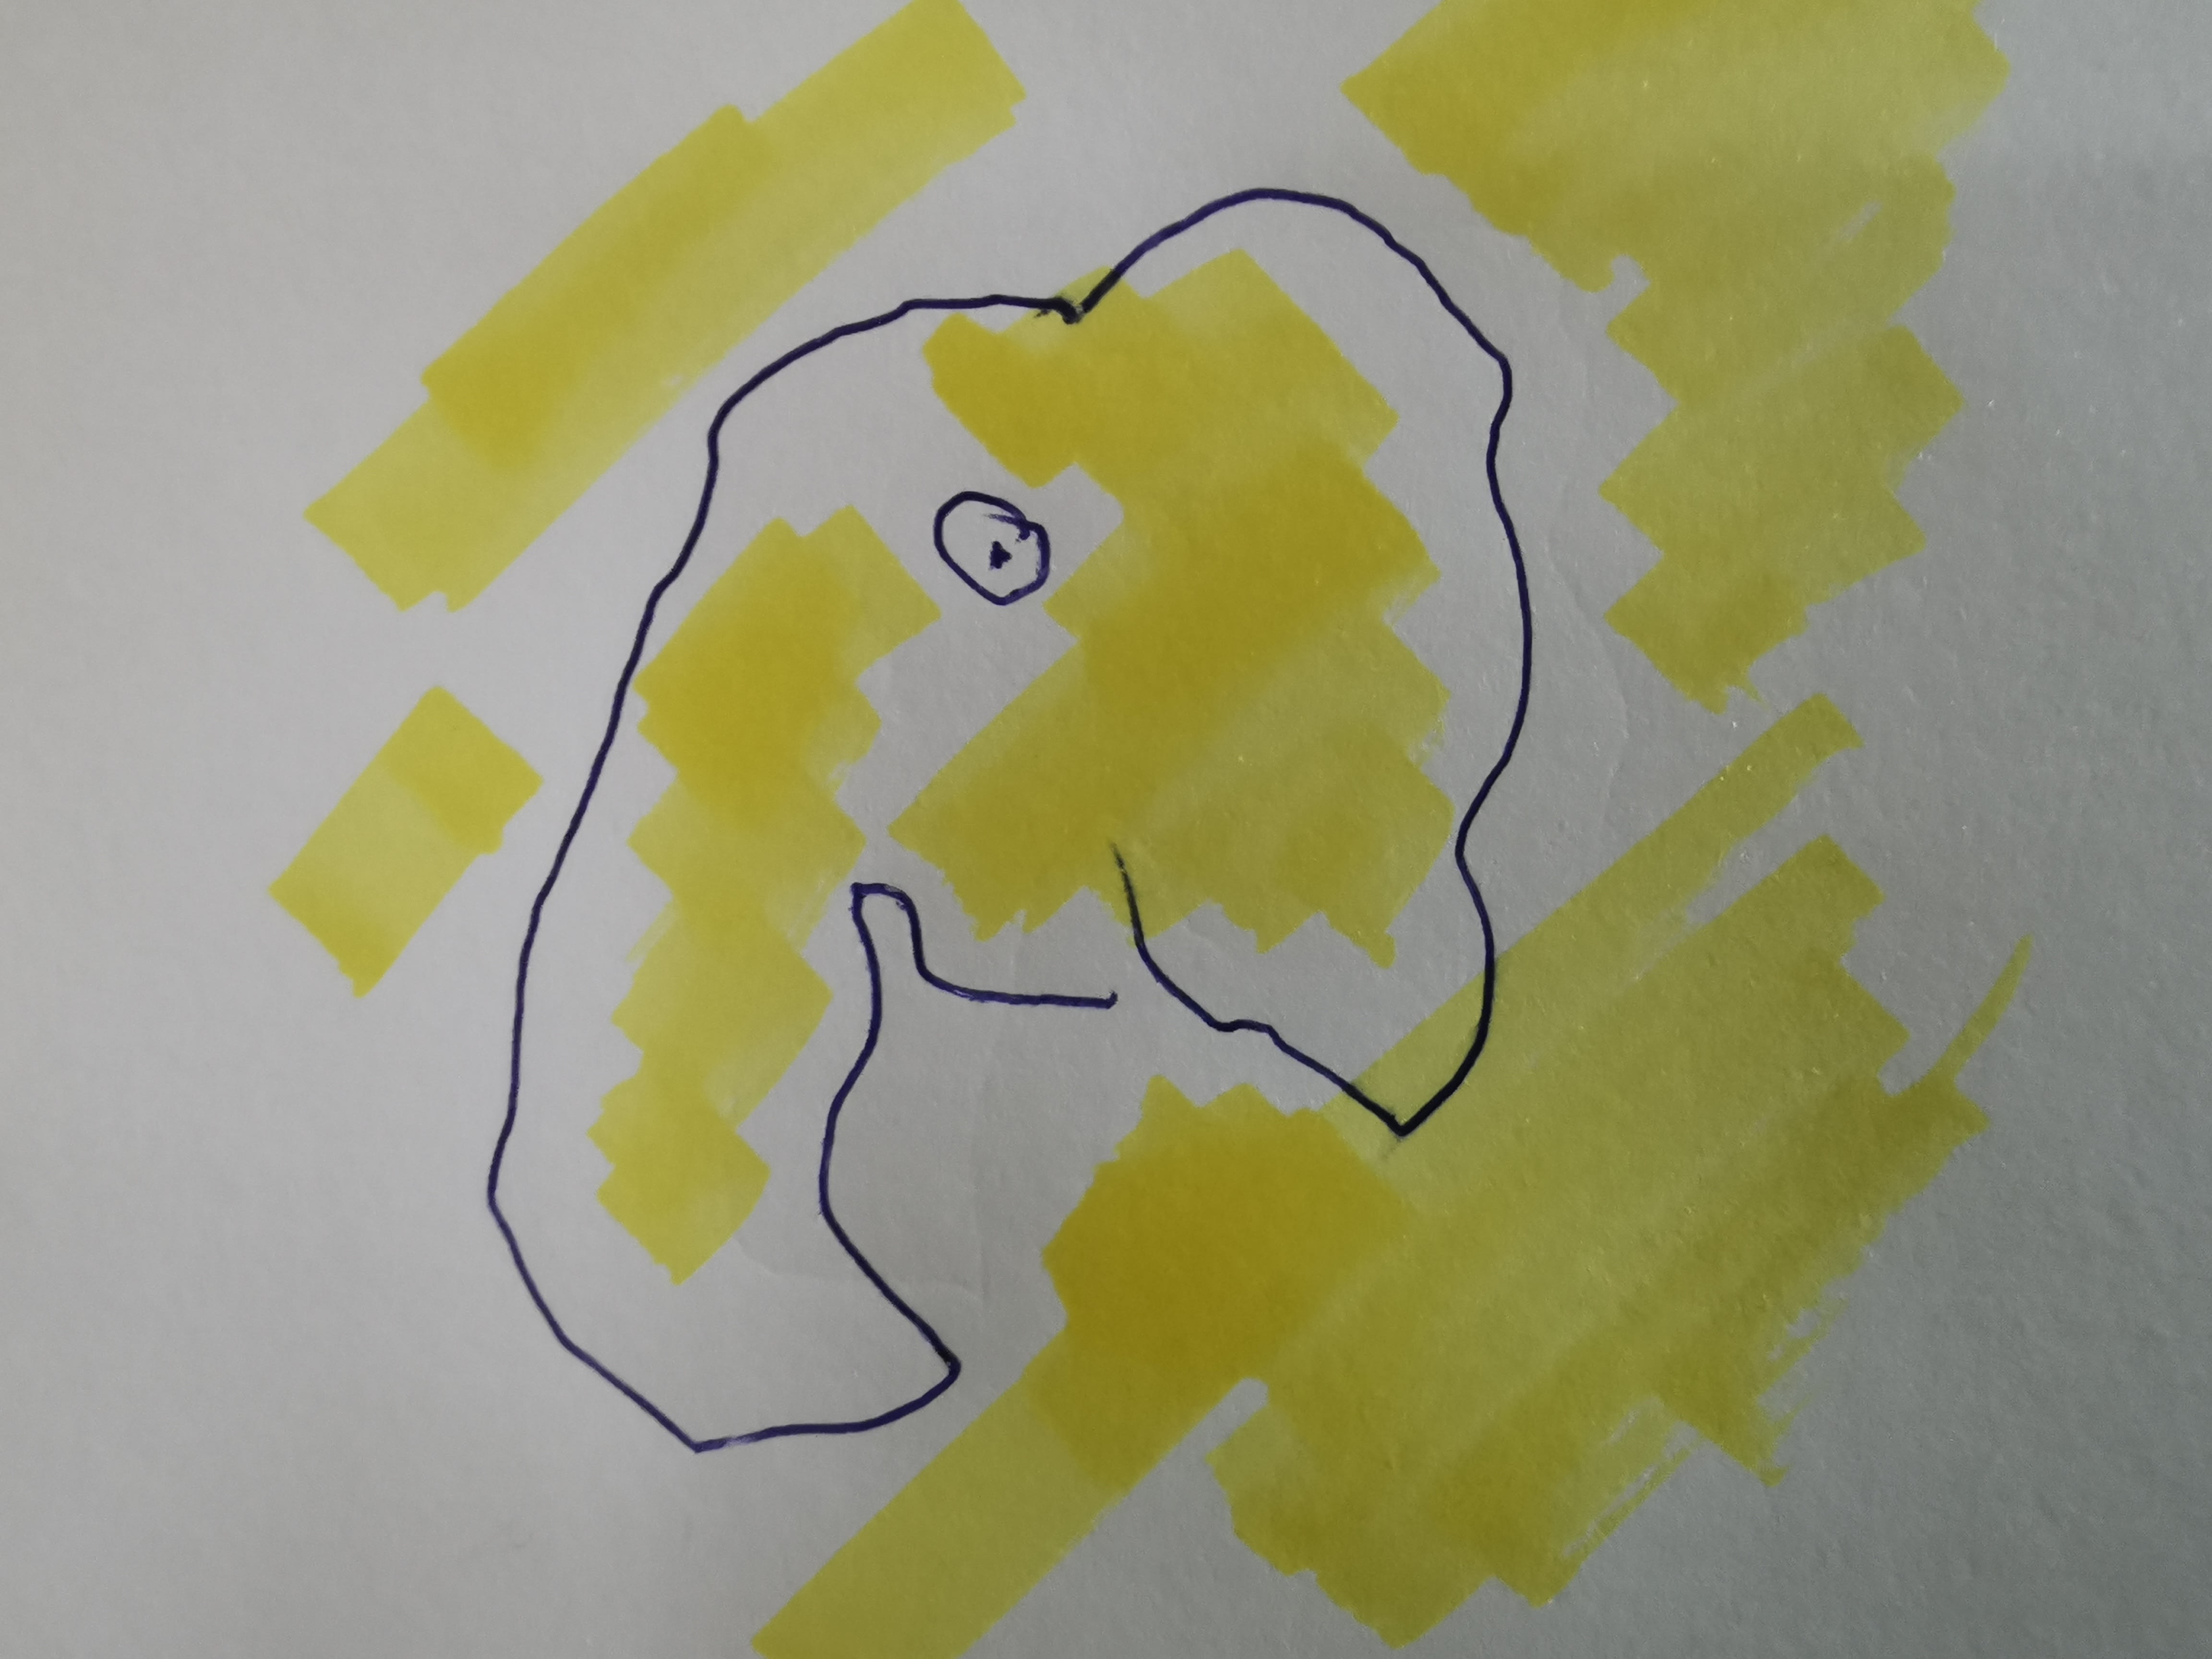 Two Yellow Elephants